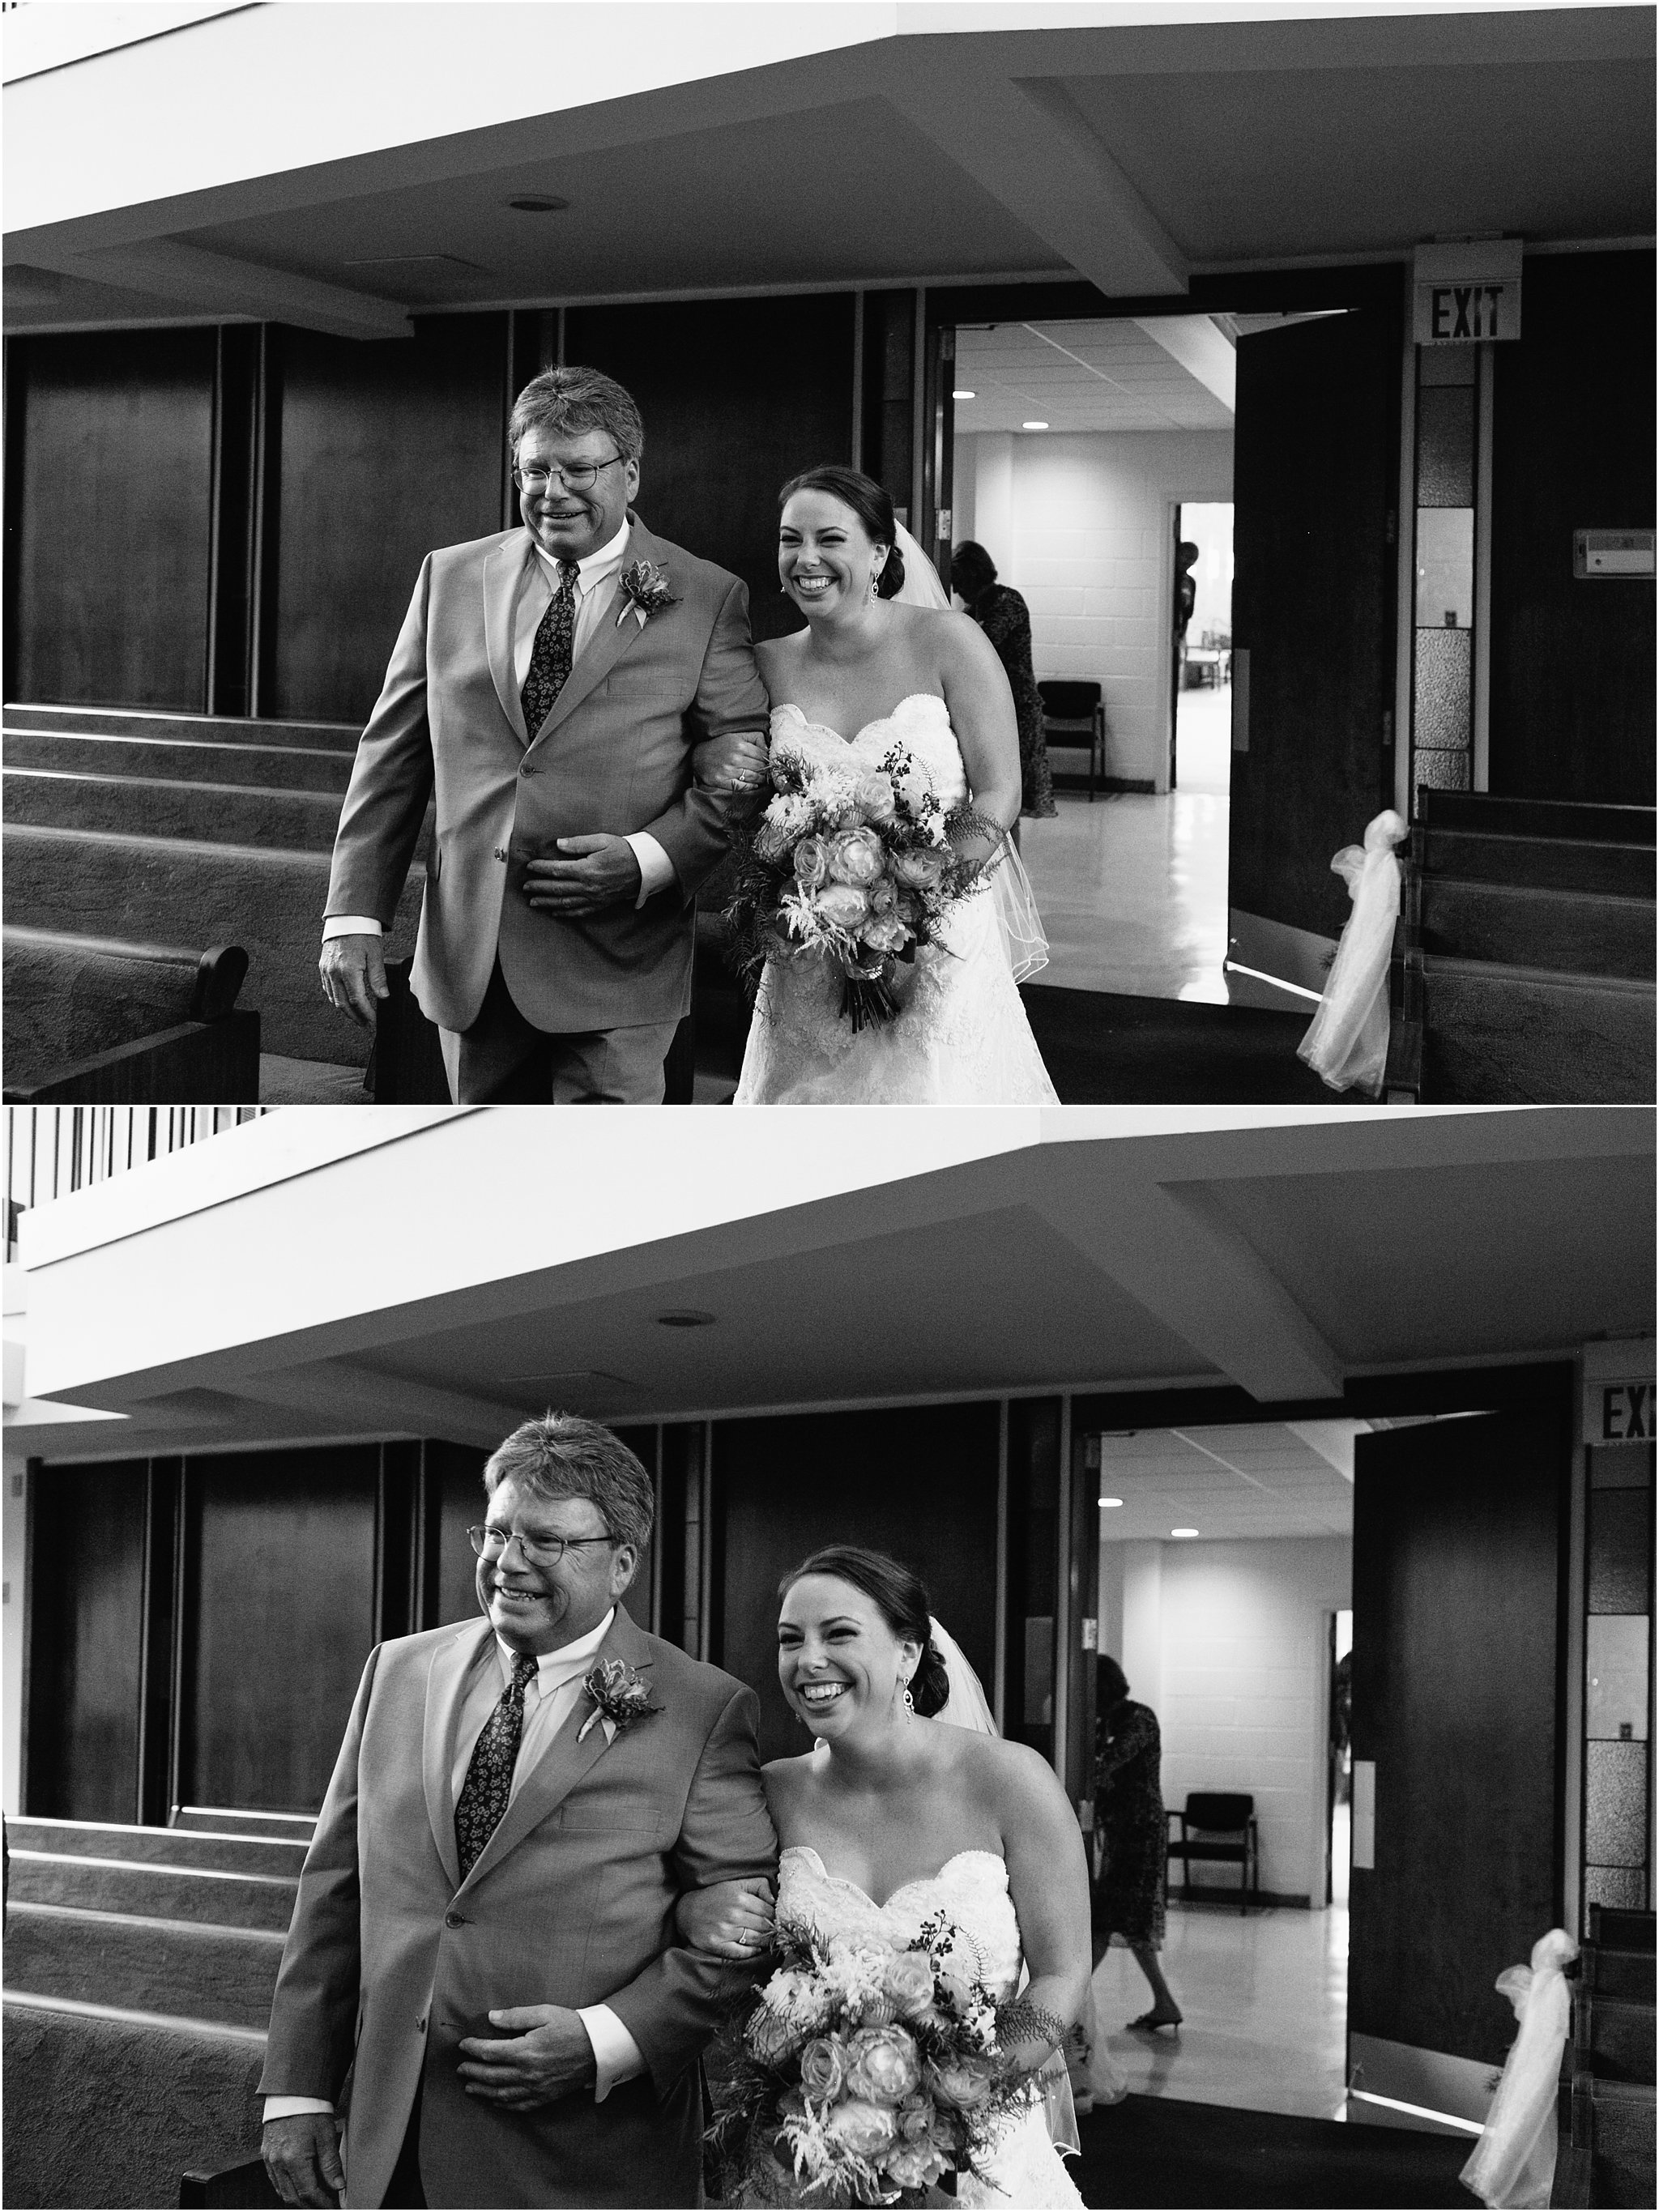 jessica_ryan_photography_wedding_photography_virginiabeach_virginia_candid_authentic_wedding_portraits_marina_shores_yacht_club_chesapeake_bay_1846